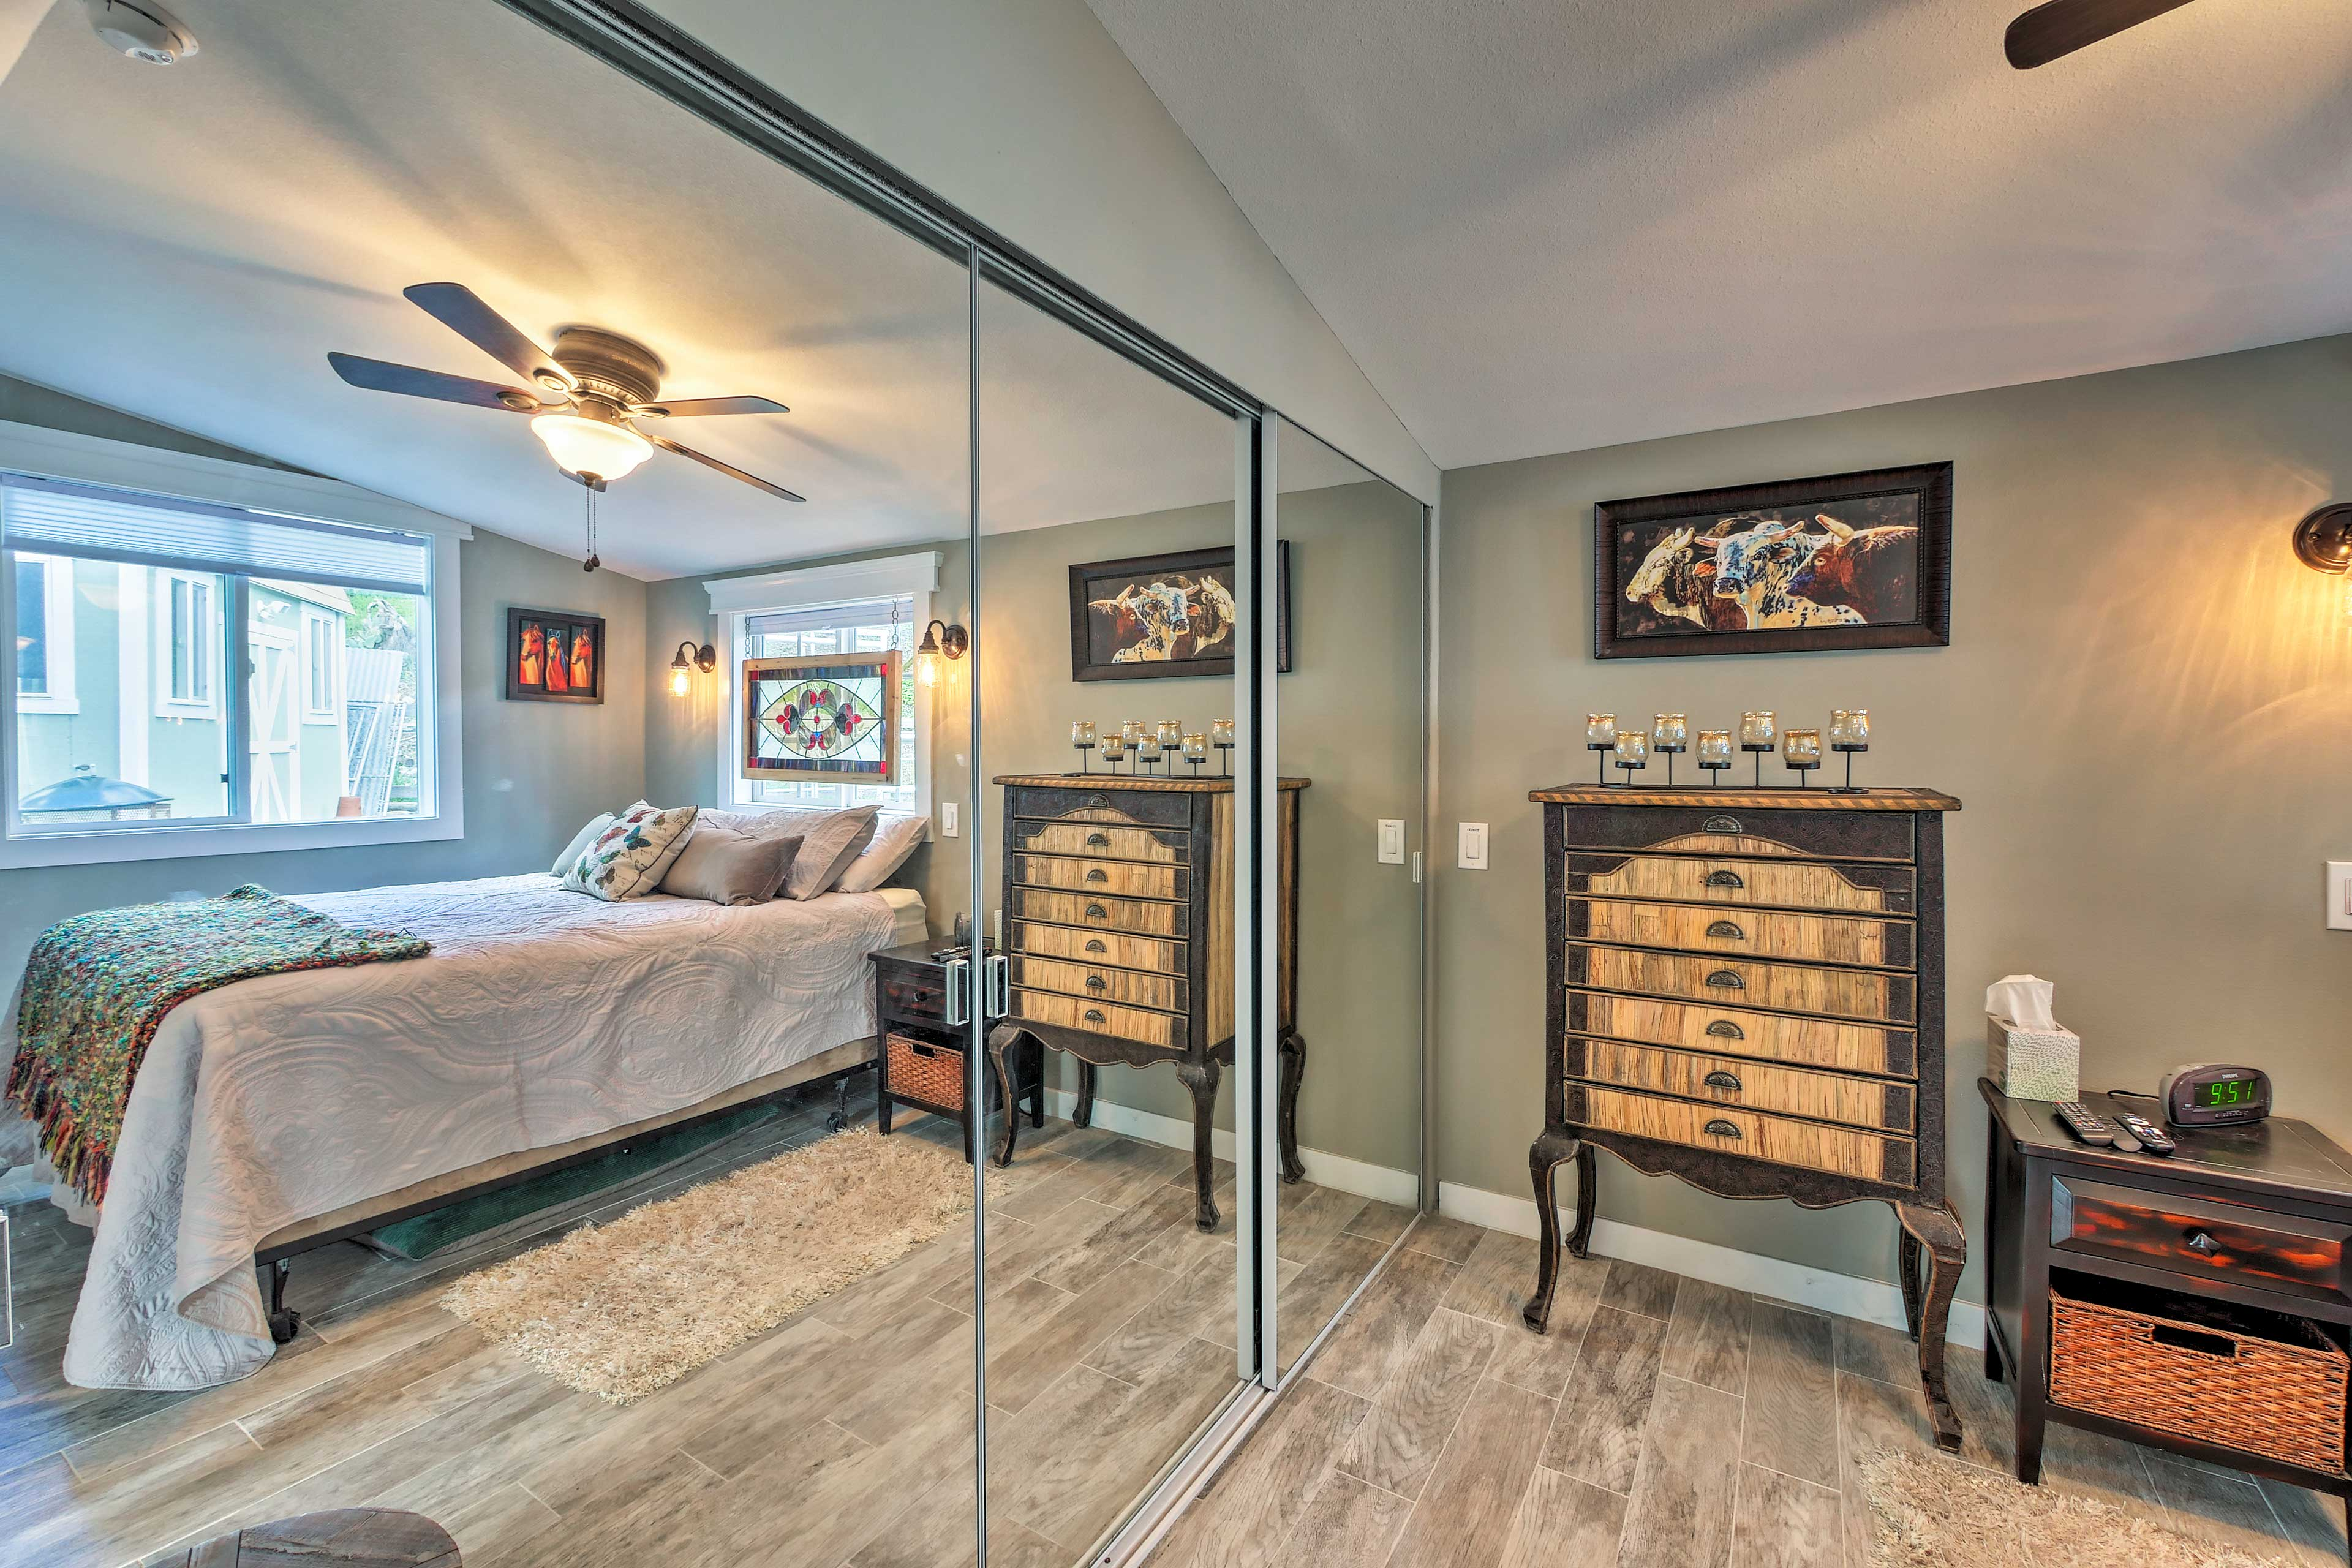 There's plenty of storage in the double mirrored closet.